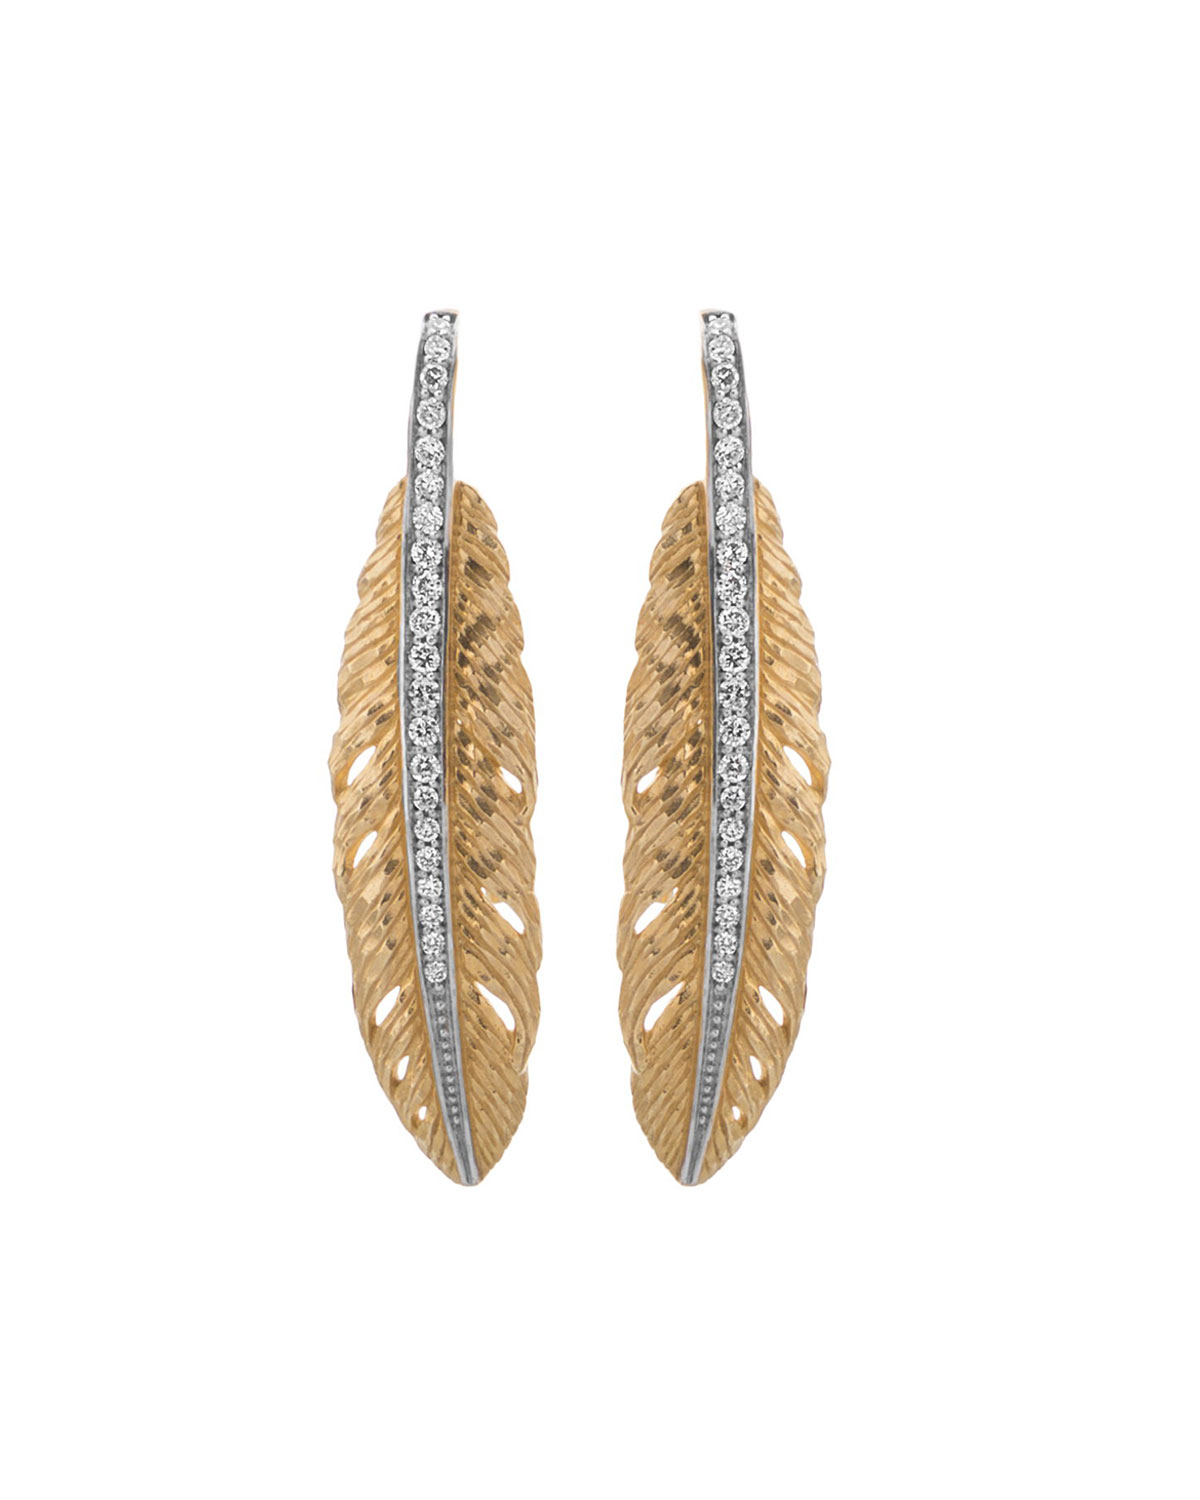 Michael Aram 18K Gold Drop Feather Earrings with Diamonds